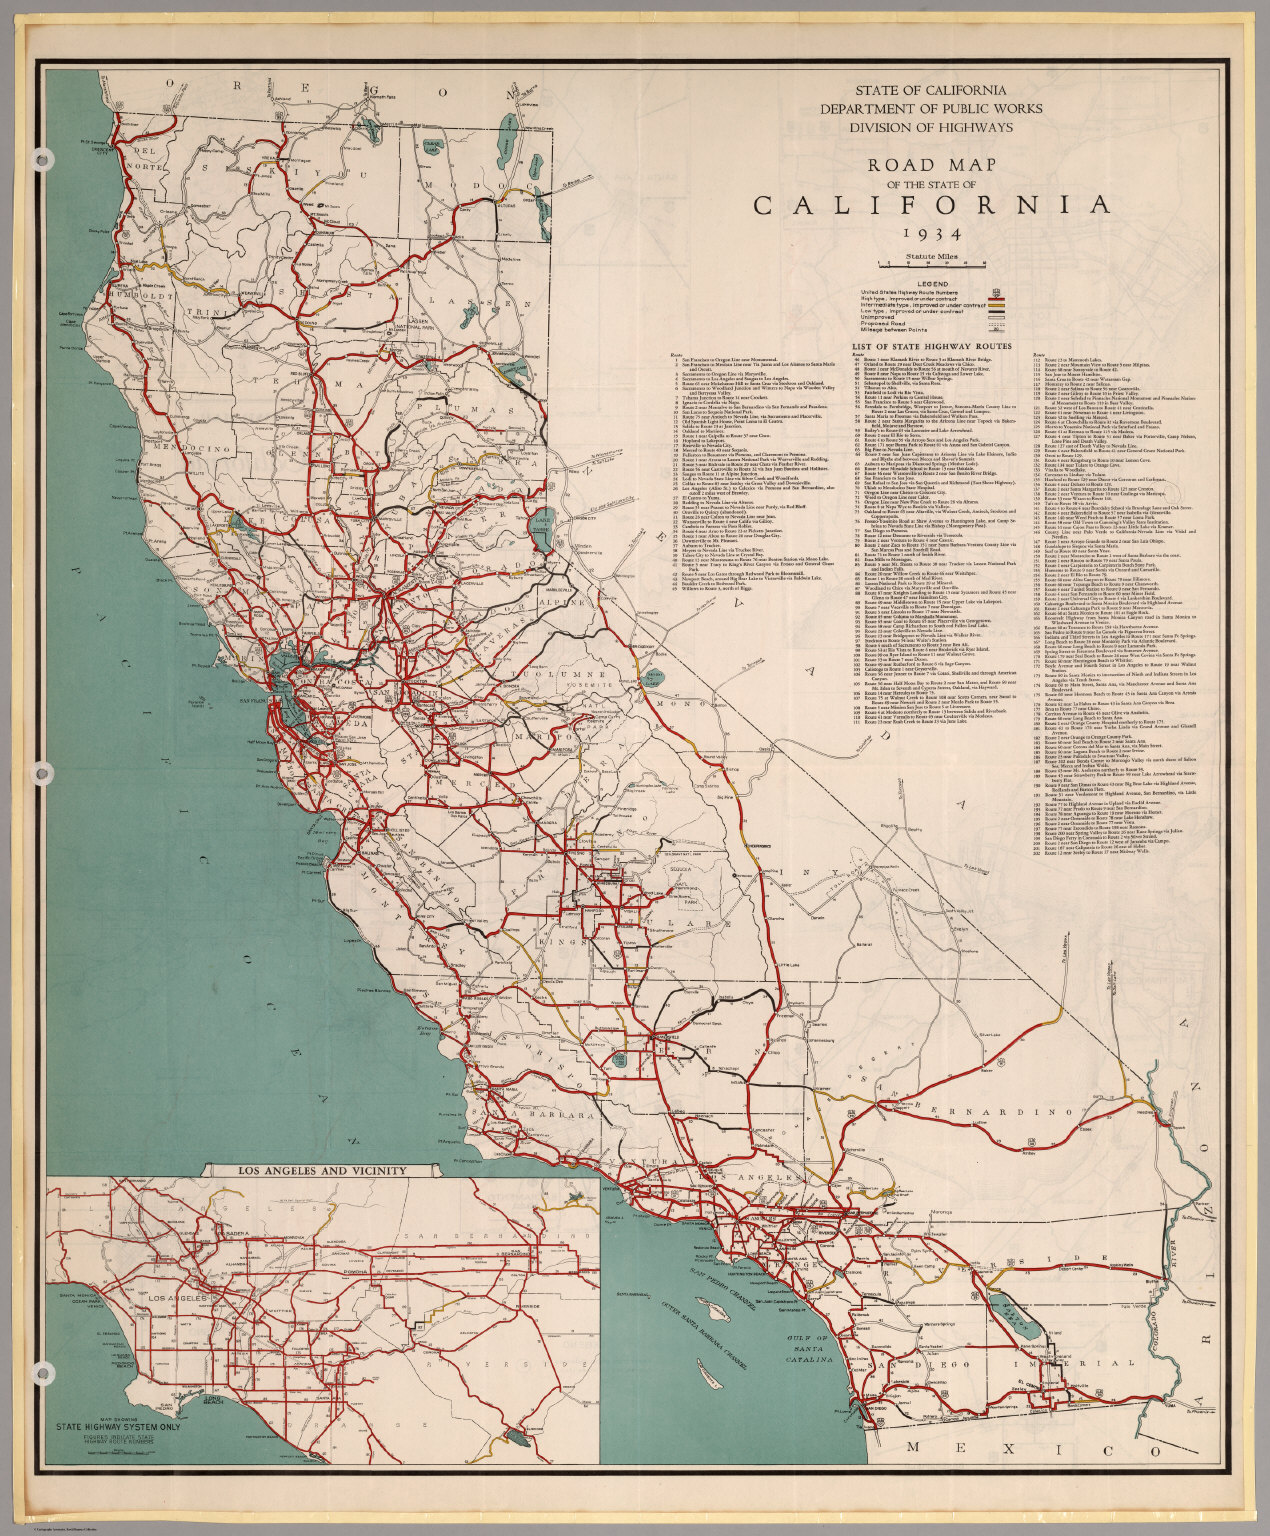 Road Map of the State of California 1934 David Rumsey – State Road Maps